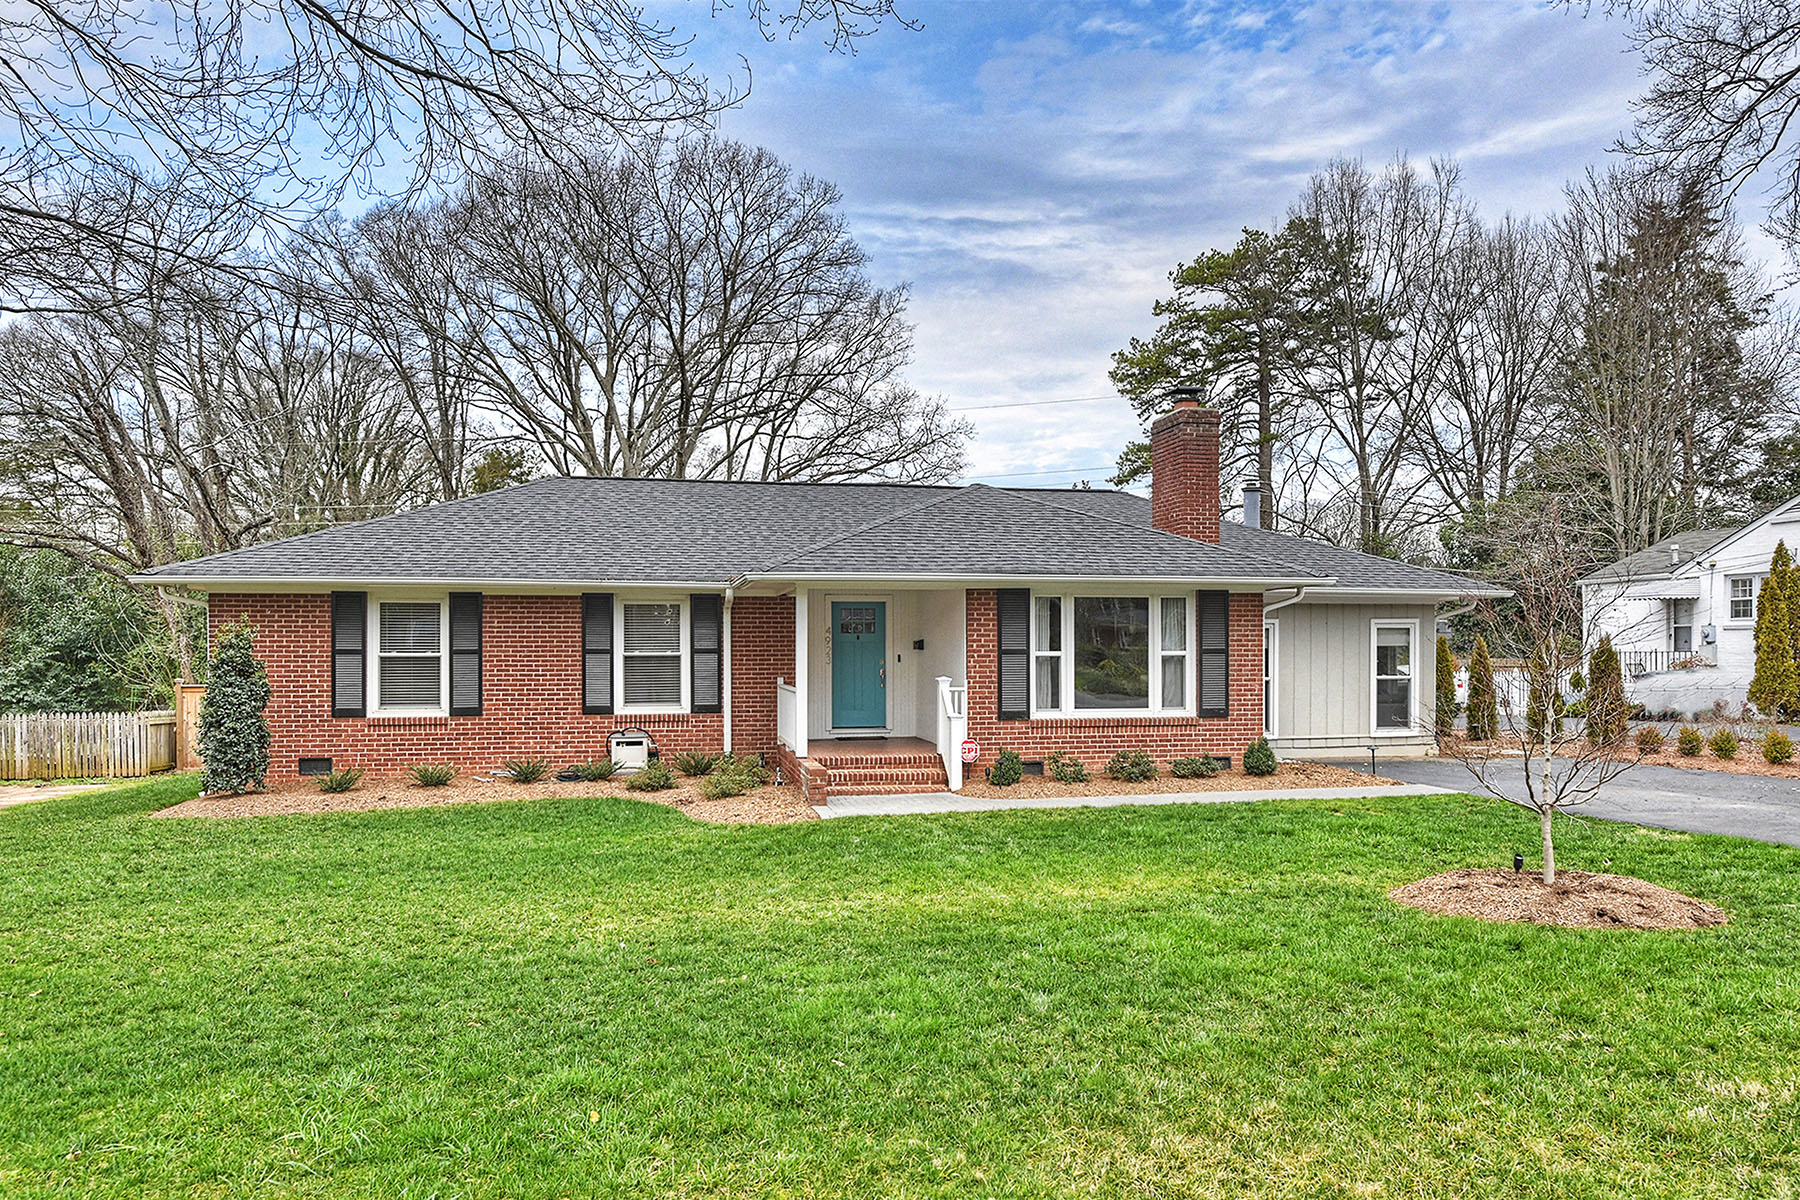 Single Family Homes for Sale at MADISON PARK 4923 Wedgewood Dr, Charlotte, North Carolina 28210 United States